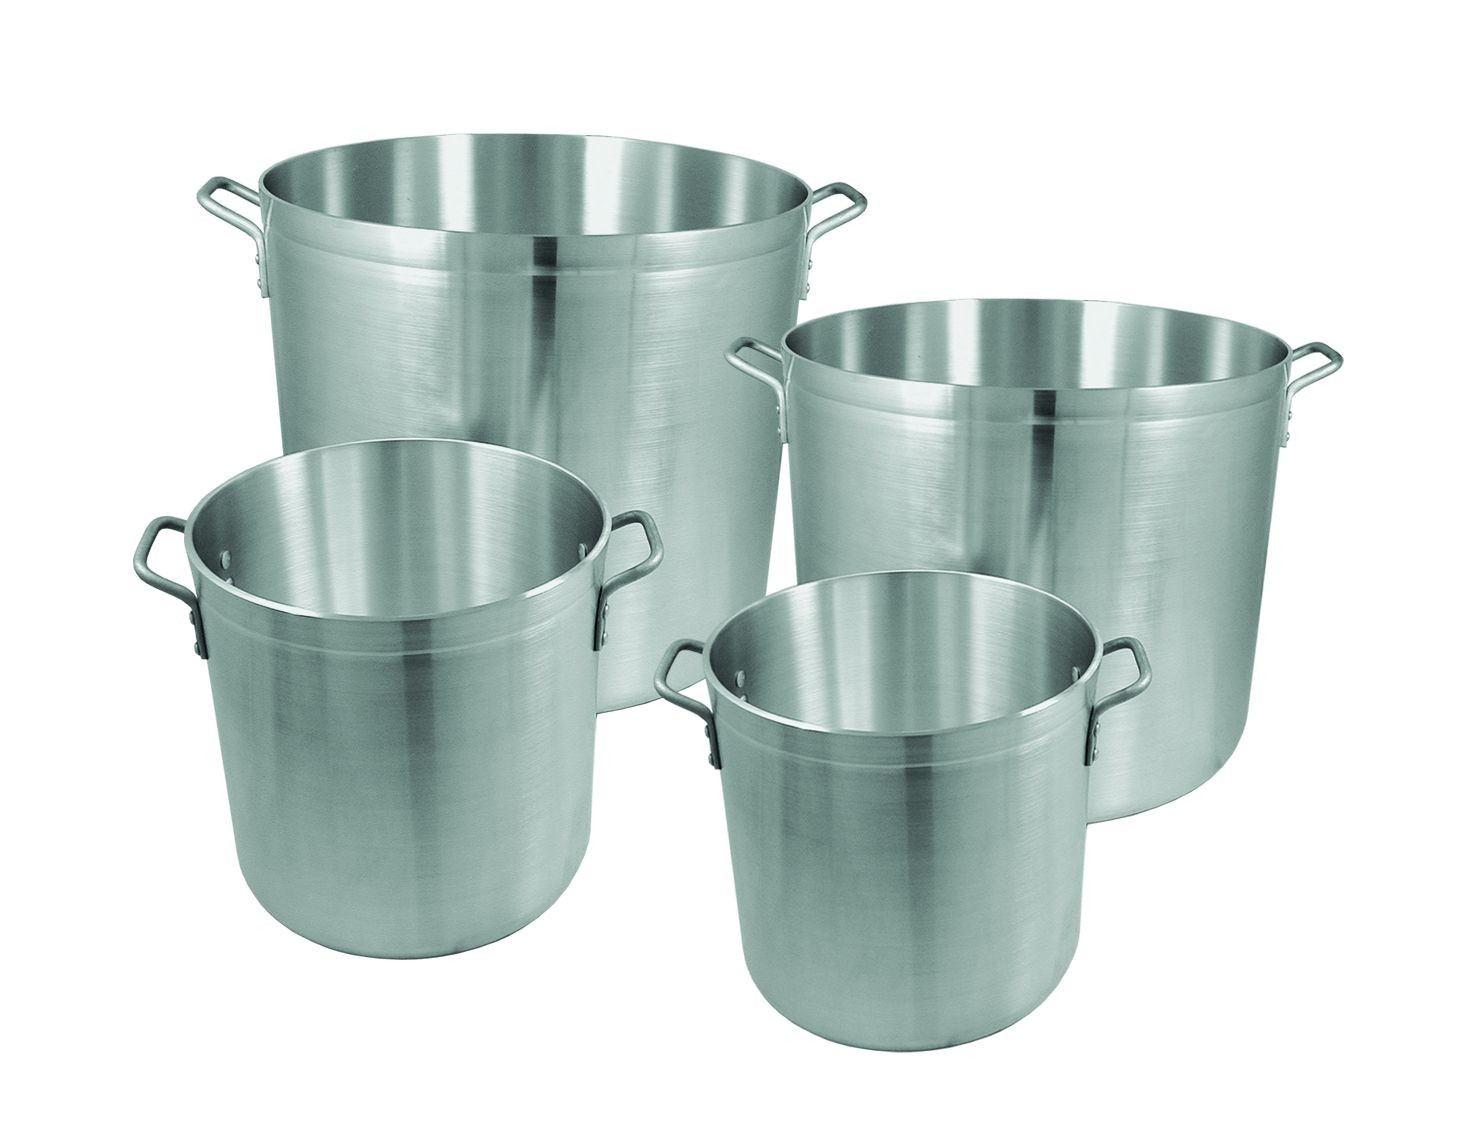 Update International APT-40HD Heavy Weight 40 Qt. Stock Pot